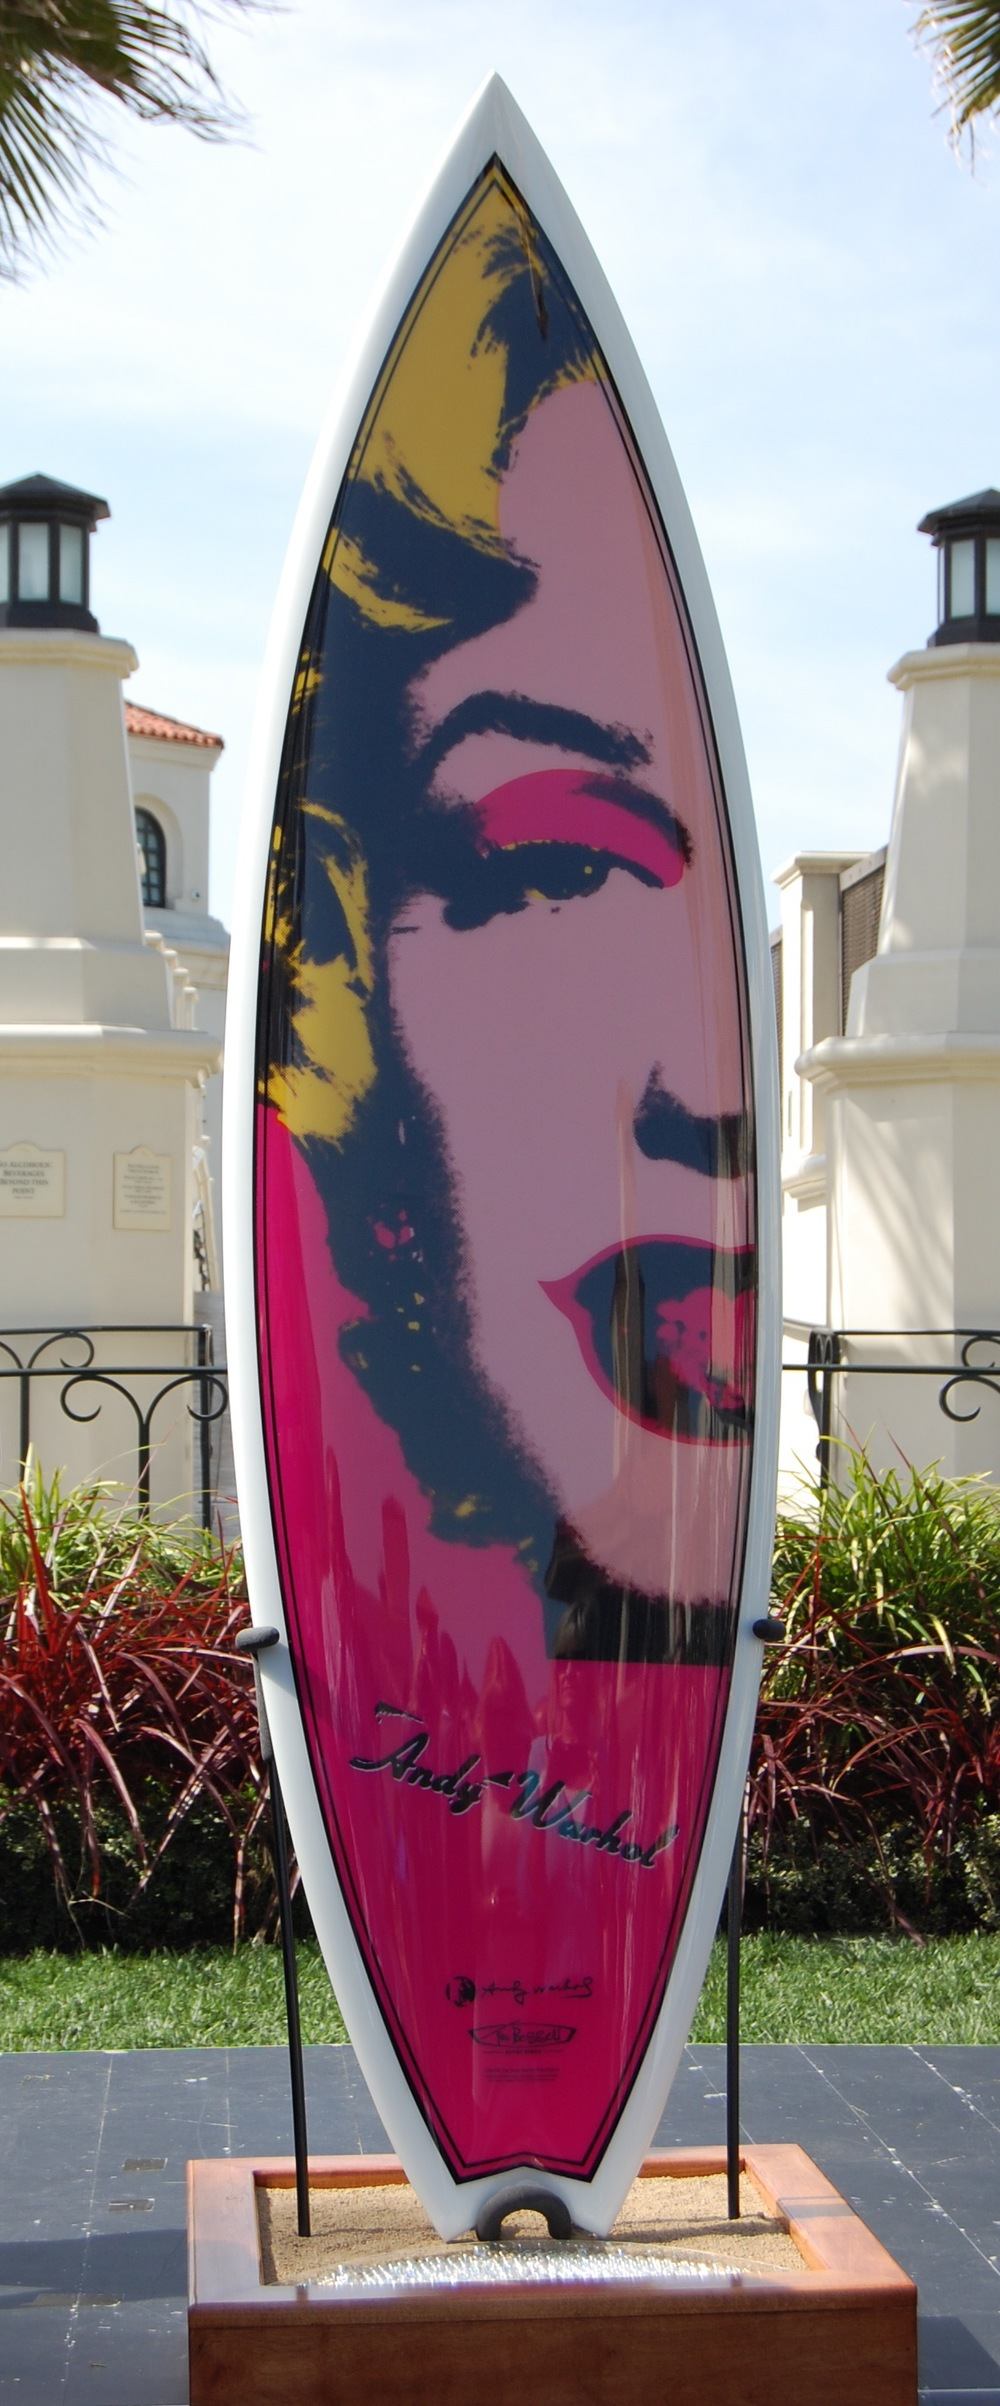 "Tim Bessell/Andy Warhol ""Surfboards on Parade"" board (Photo by Lauren Lloyd)"